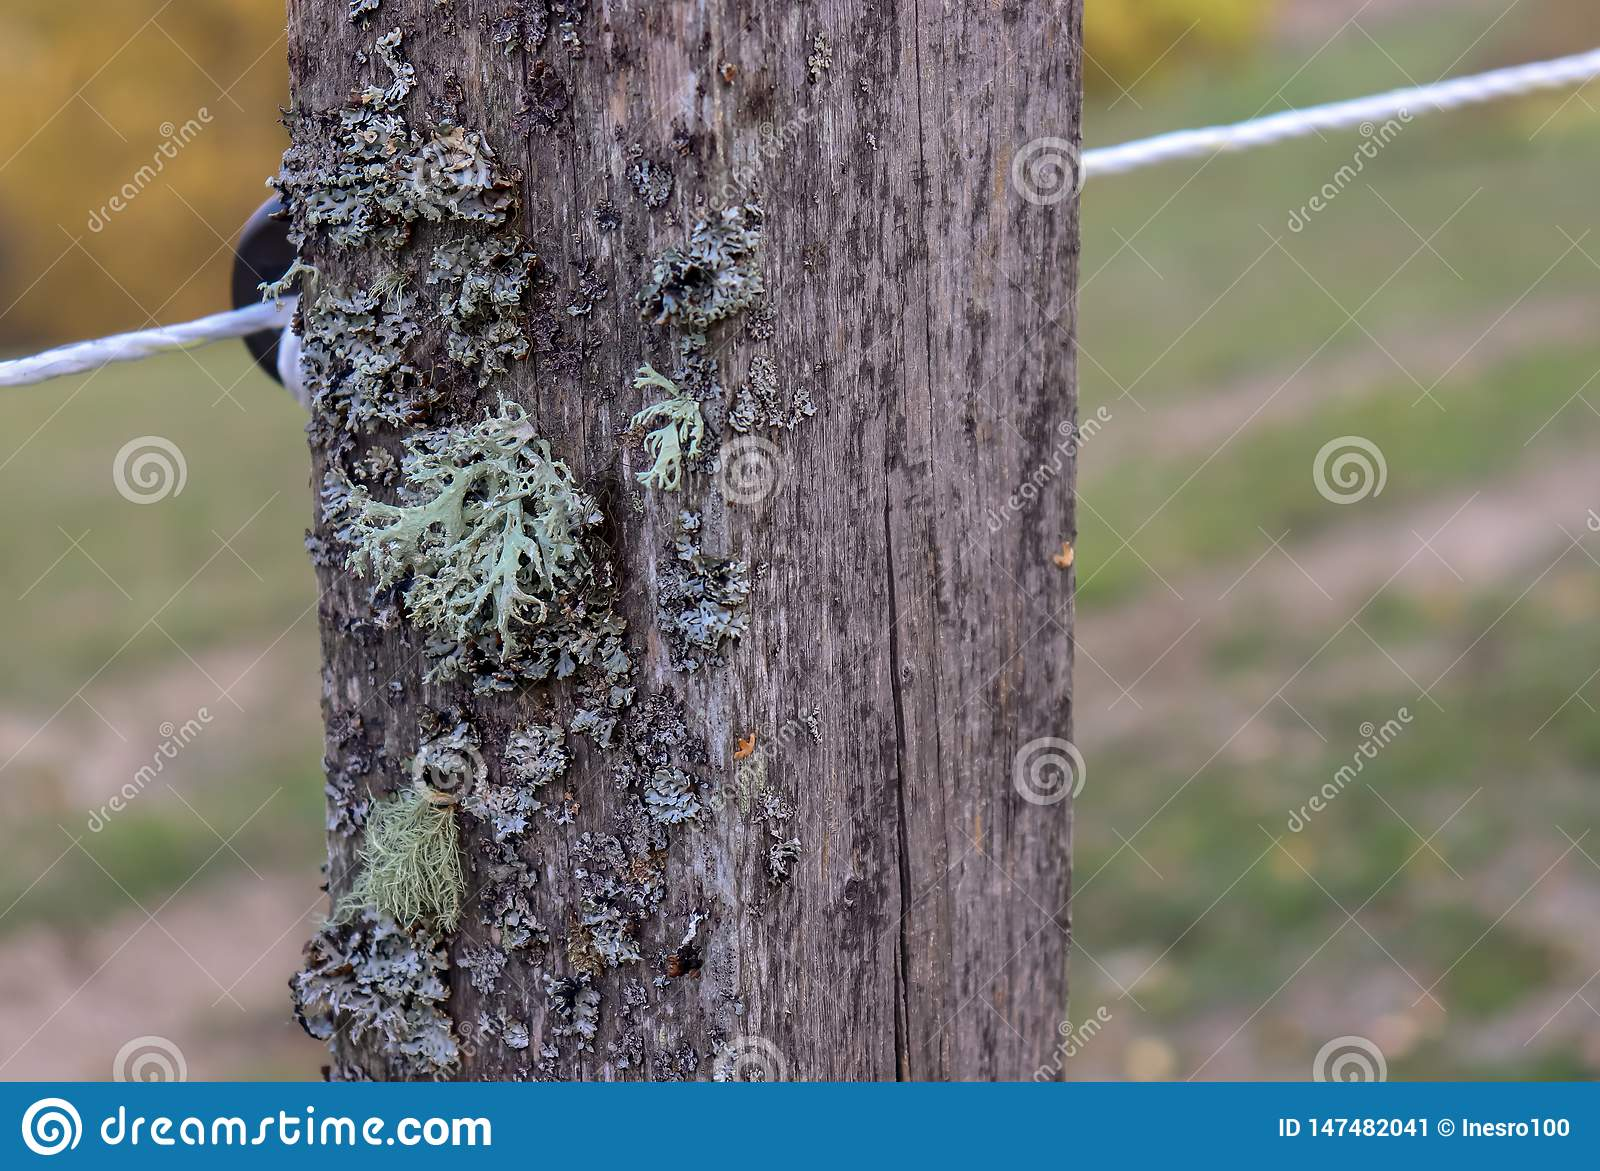 Old wooden rustic fence post with moss and wires